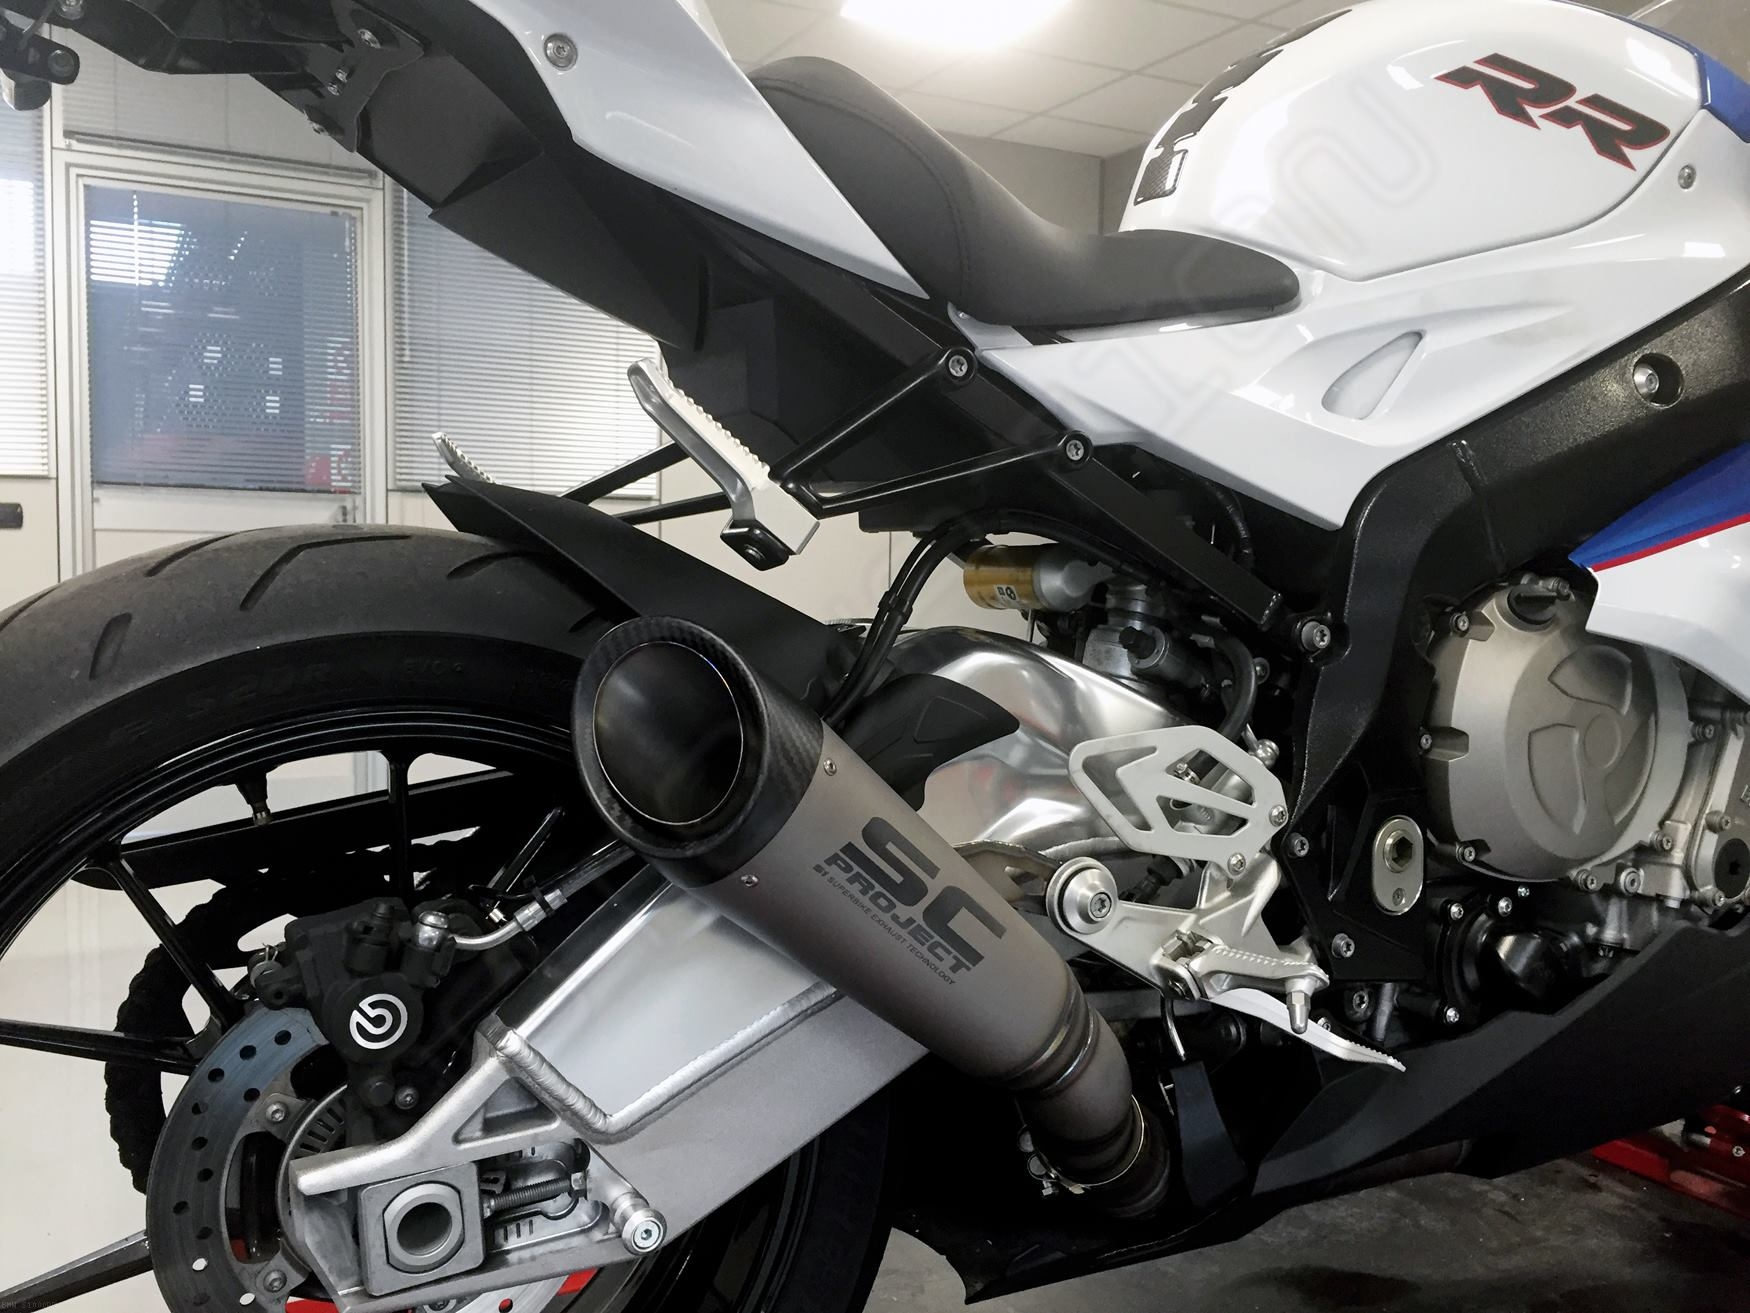 s1 exhaust by sc project bmw s1000rr 2016